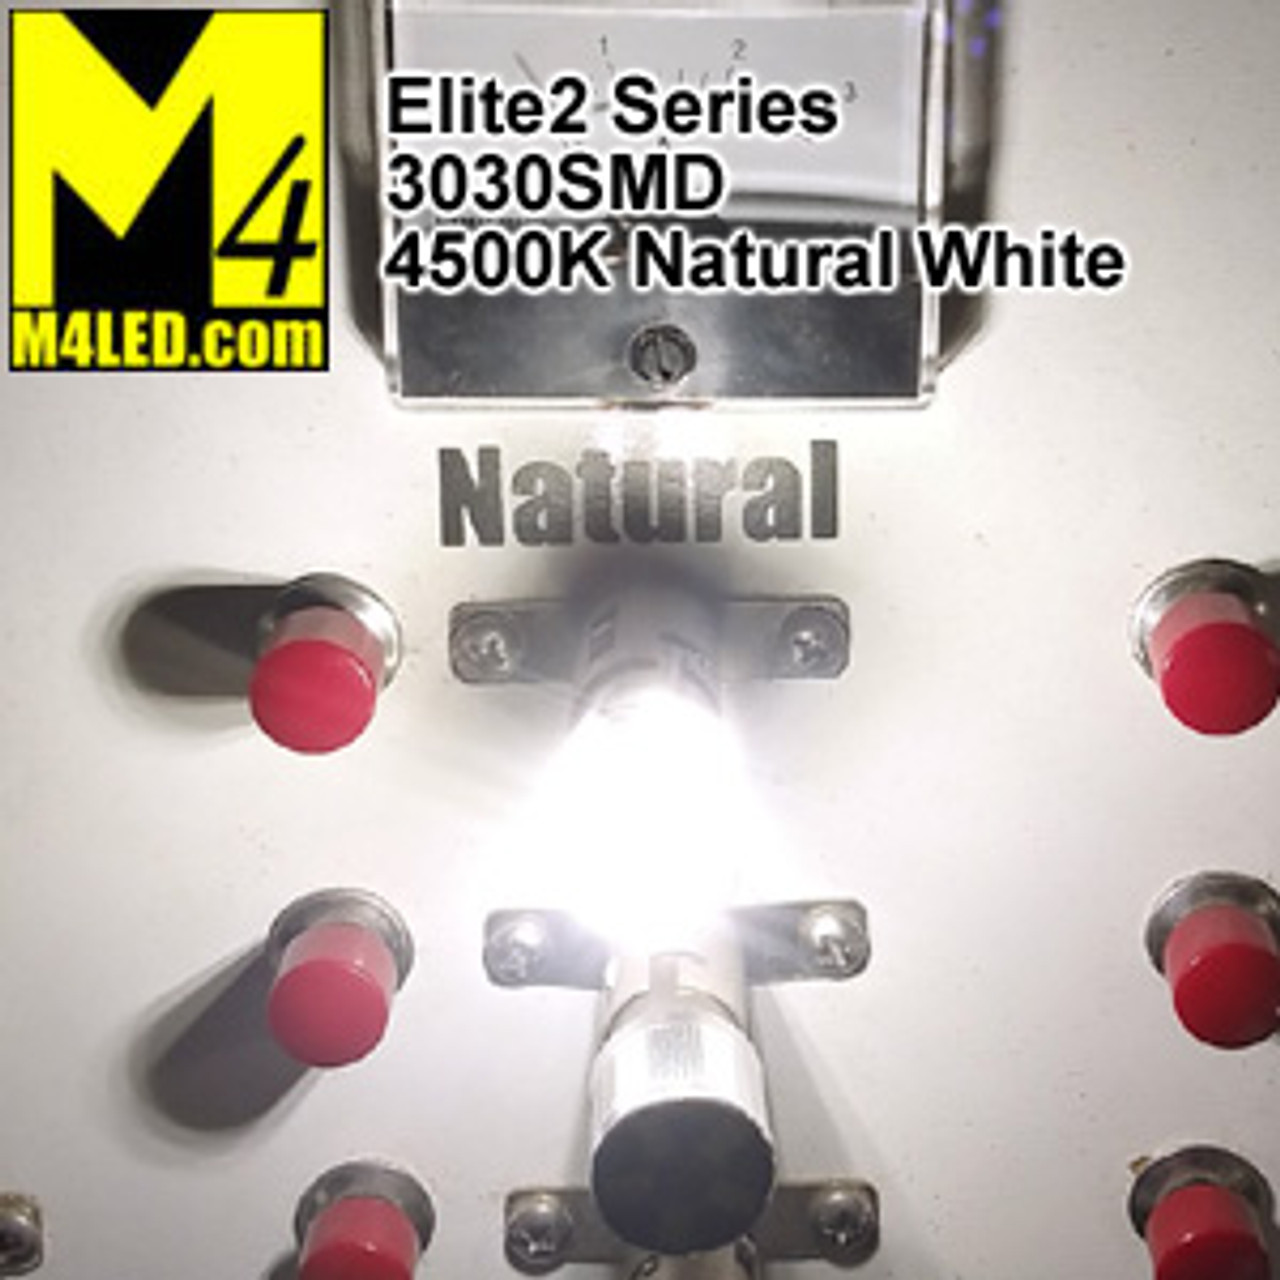 921-33-3030-NW Natural White Elite2 (912/921) Wedge Base